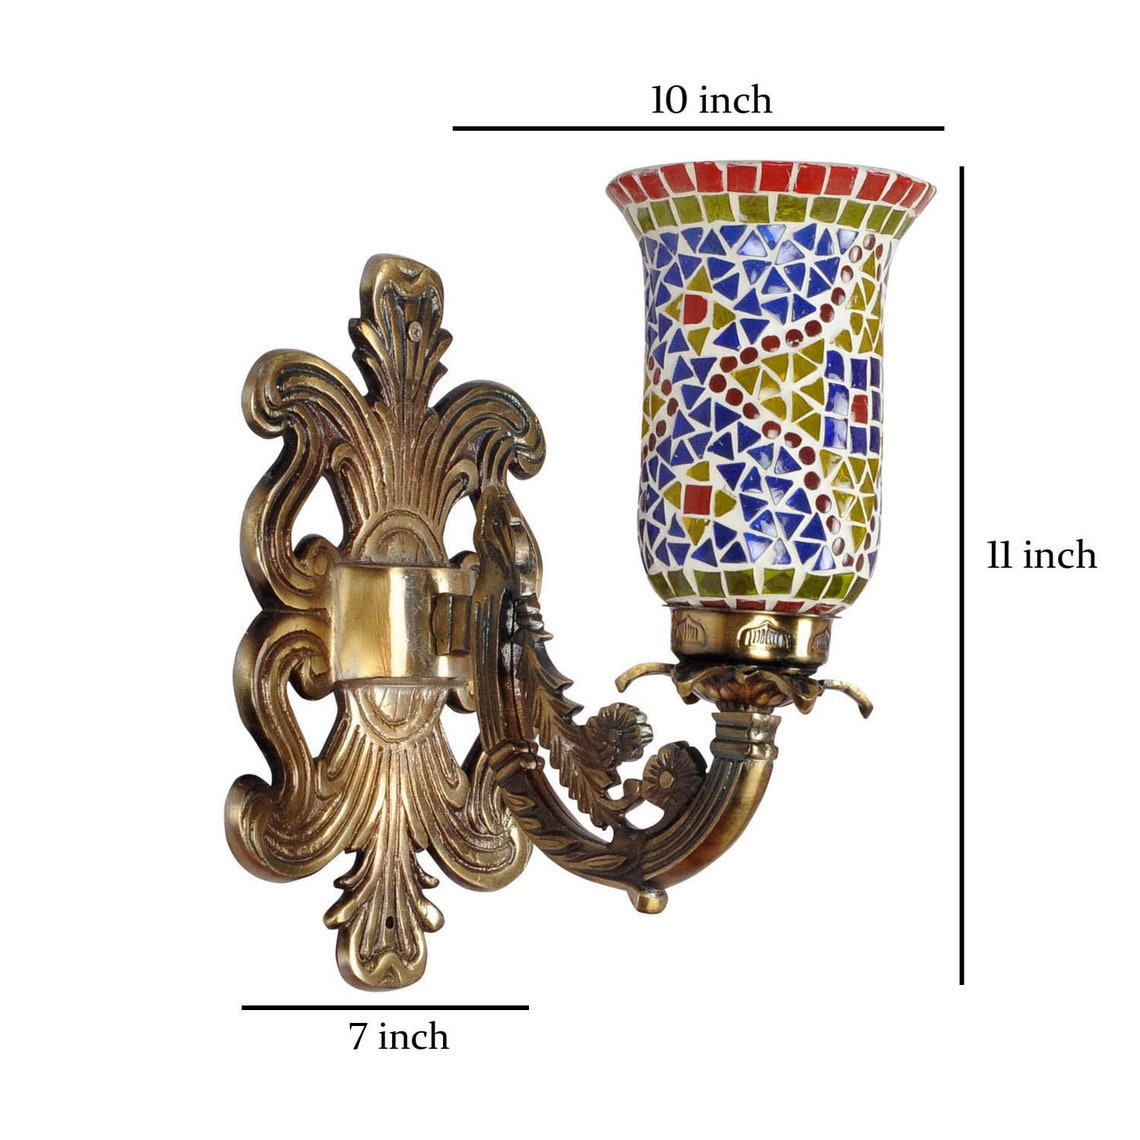 Antique Style Wall Sconce Lighting Adjustable Wall Light Mosaic Glass Lamp Shade Home Decor Eclairage